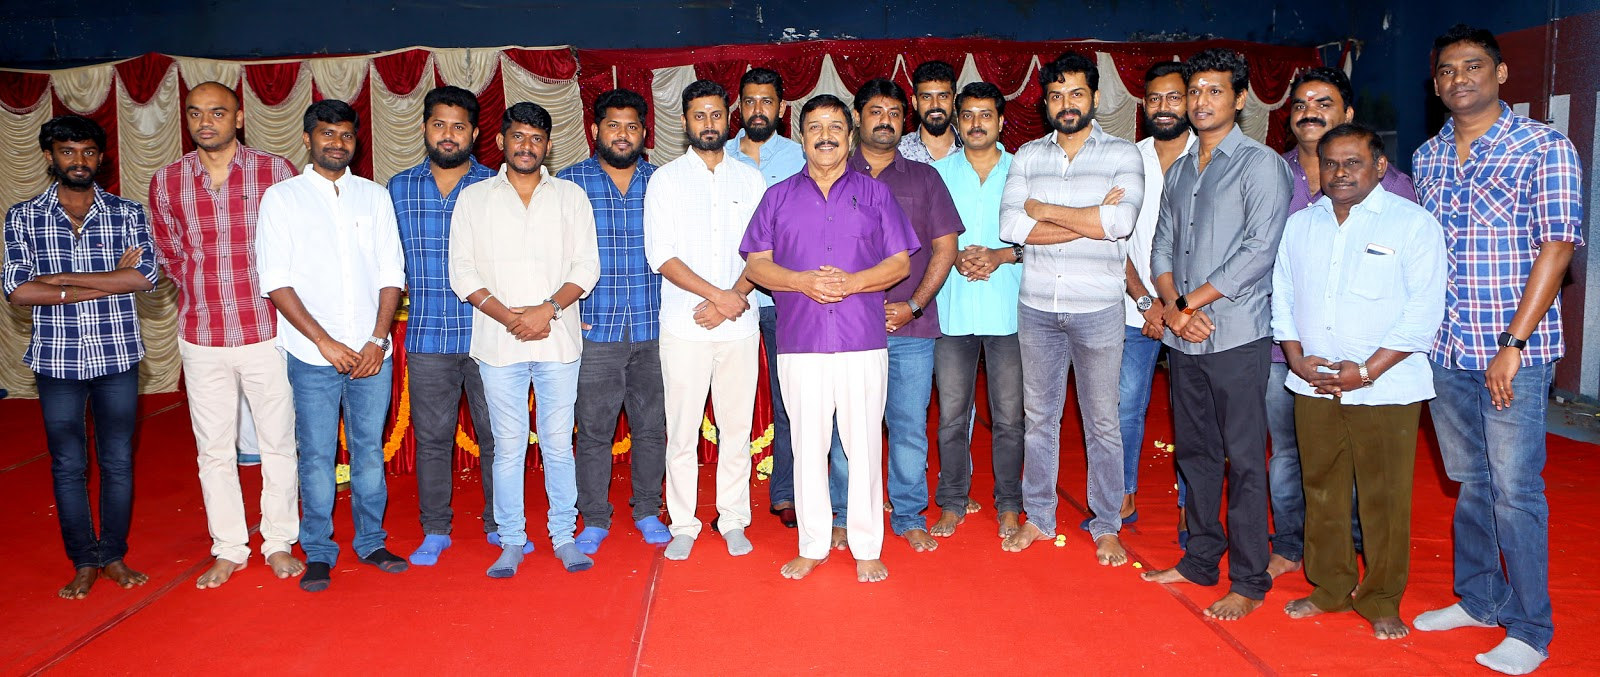 Kathi's new Film Karthi 18 Directed by Lokesh Kanagaraj Launched